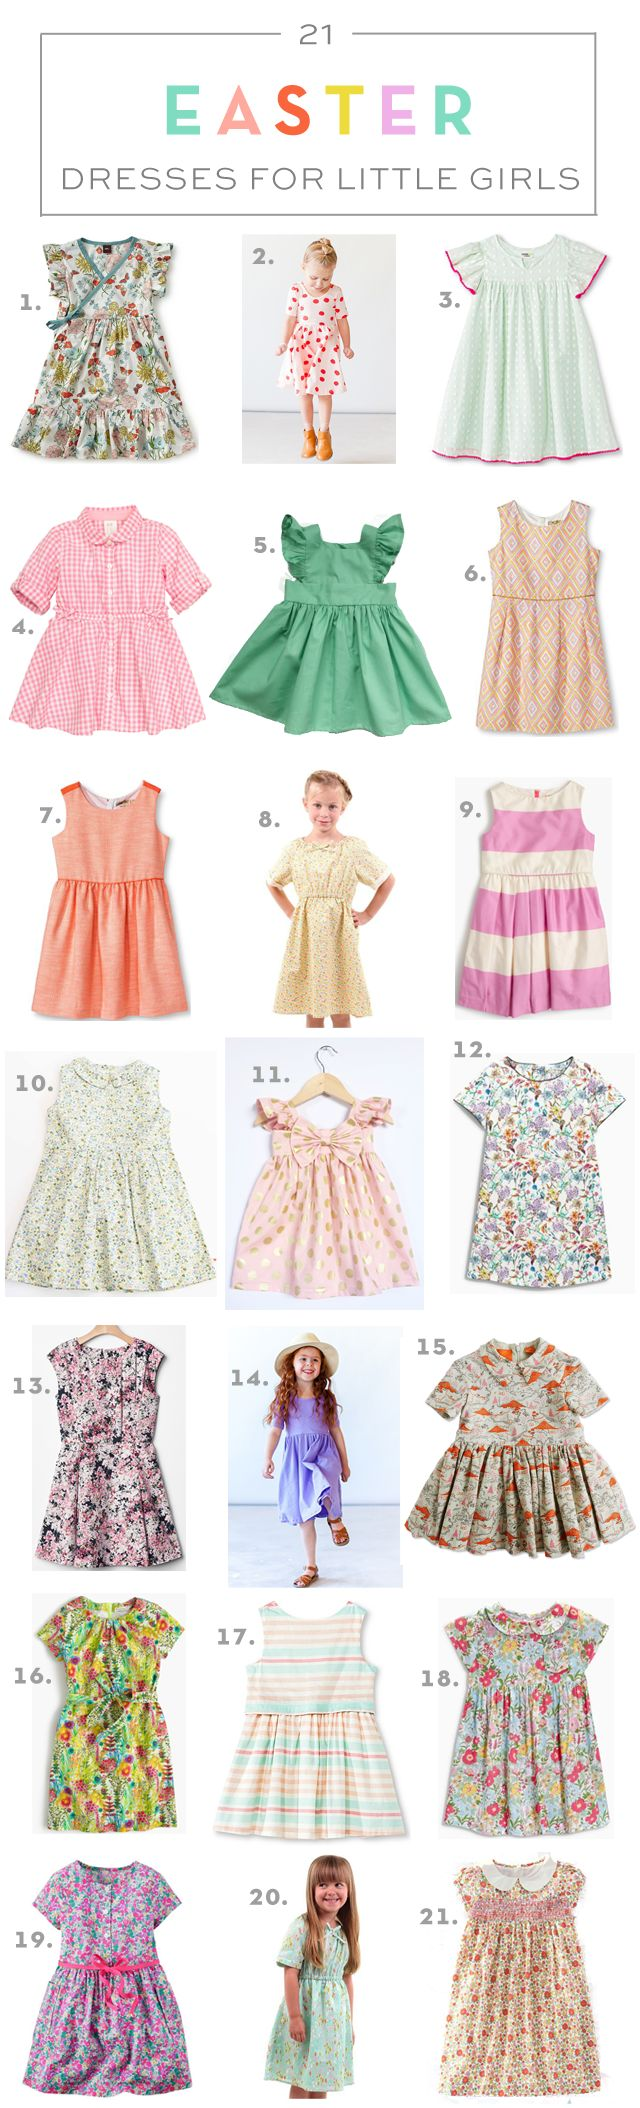 21 Easter Dresses for Little Girls // via armelleblog.com